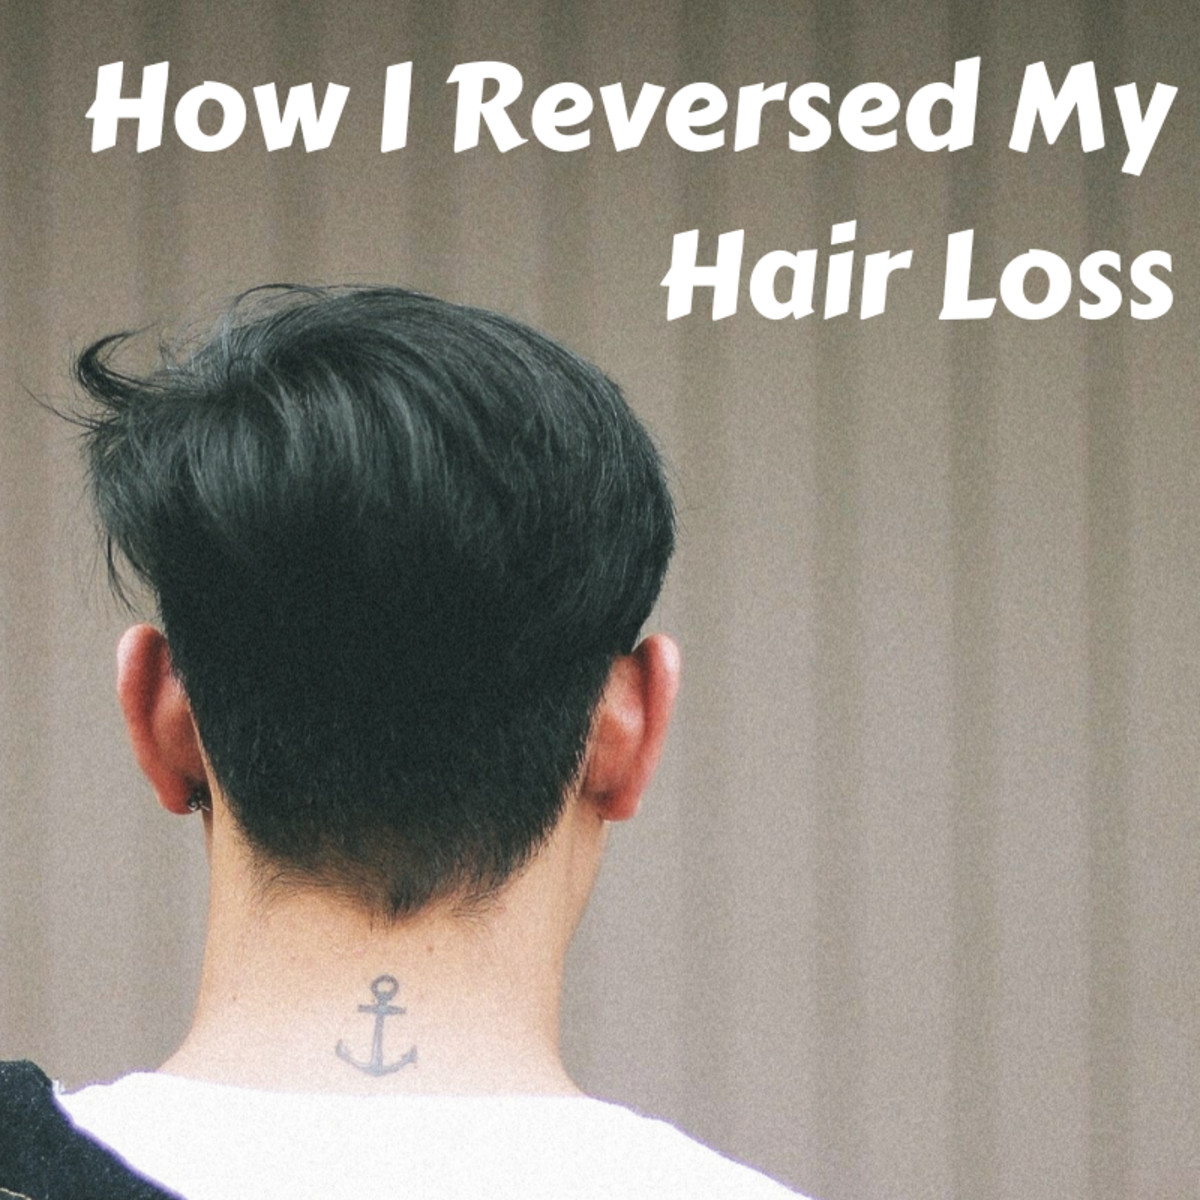 I started losing my hair at a young age. Luckily, with some research, I was able to pinpoint the causes of my problem and reverse it with some significant lifestyle changes.